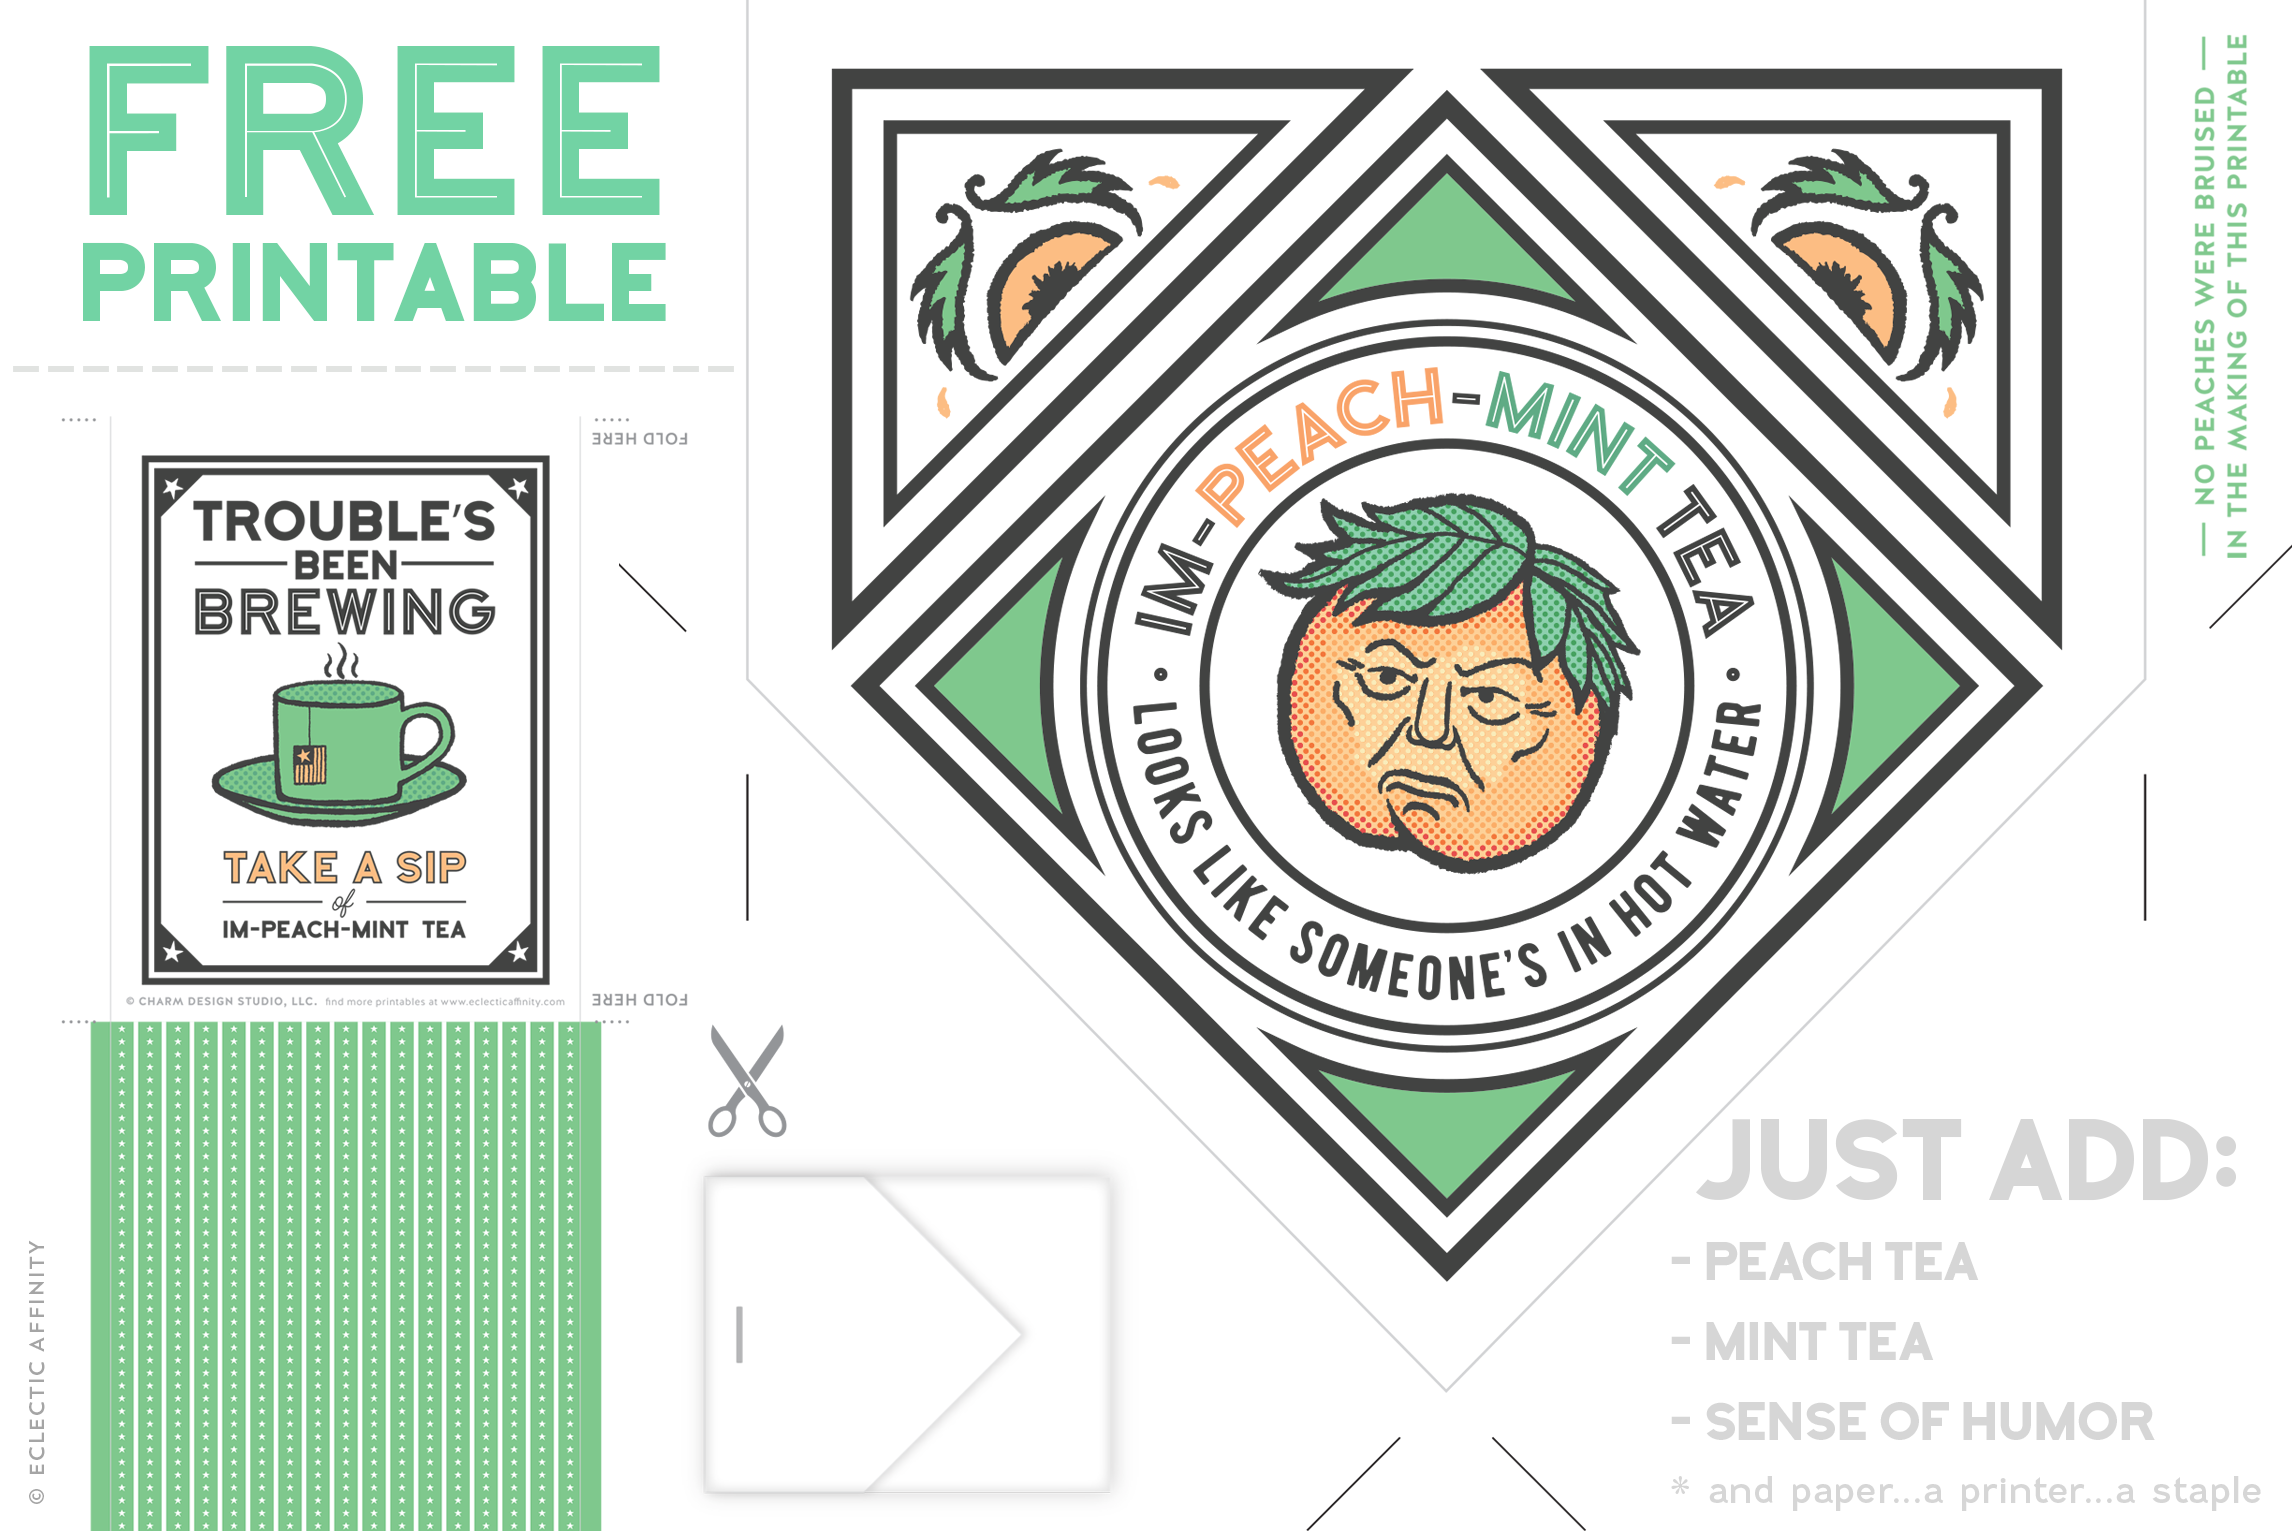 Download this free Im-Peach-Mint Tea Printable at Eclectic Affinity